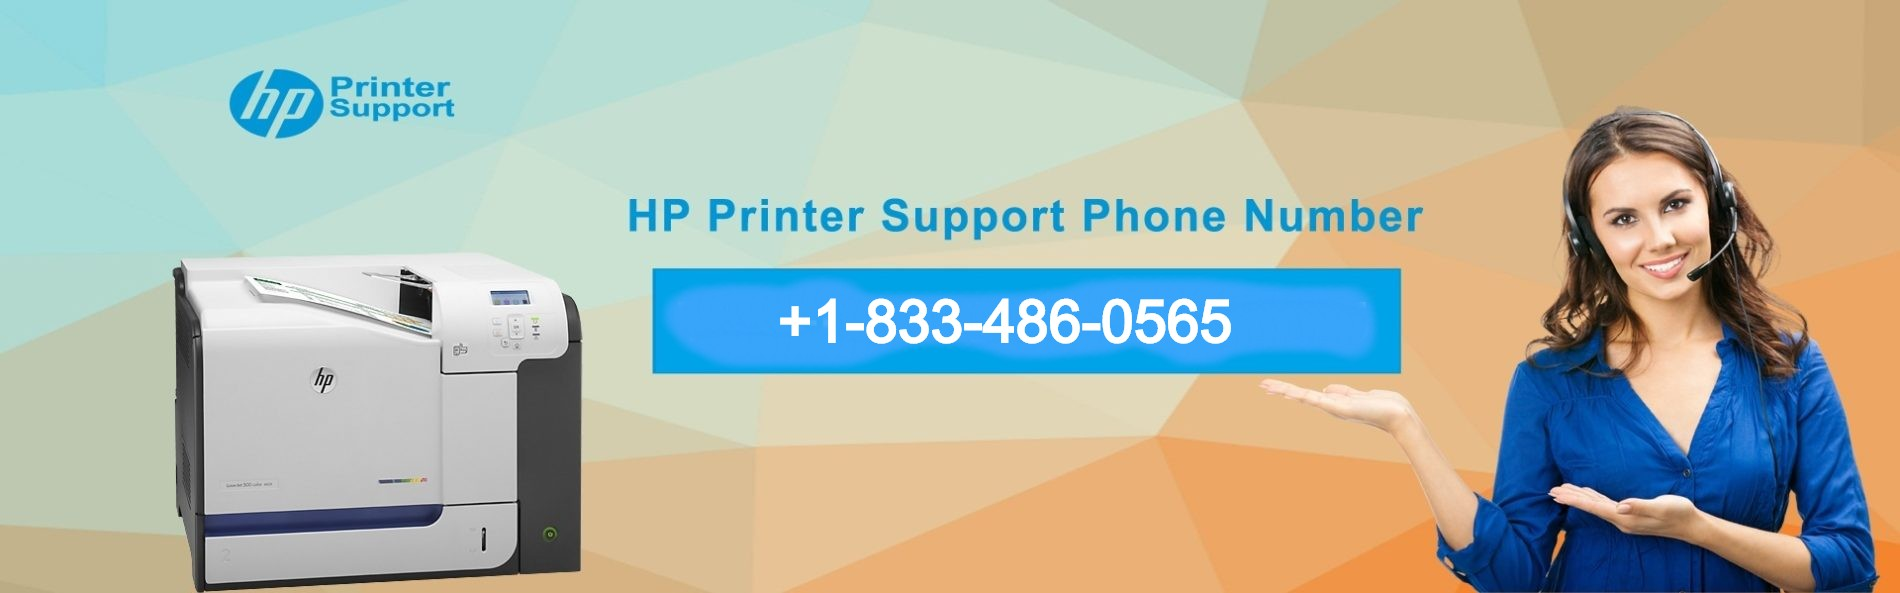 connect my HP 2630 printer to WiFi,hp support usa